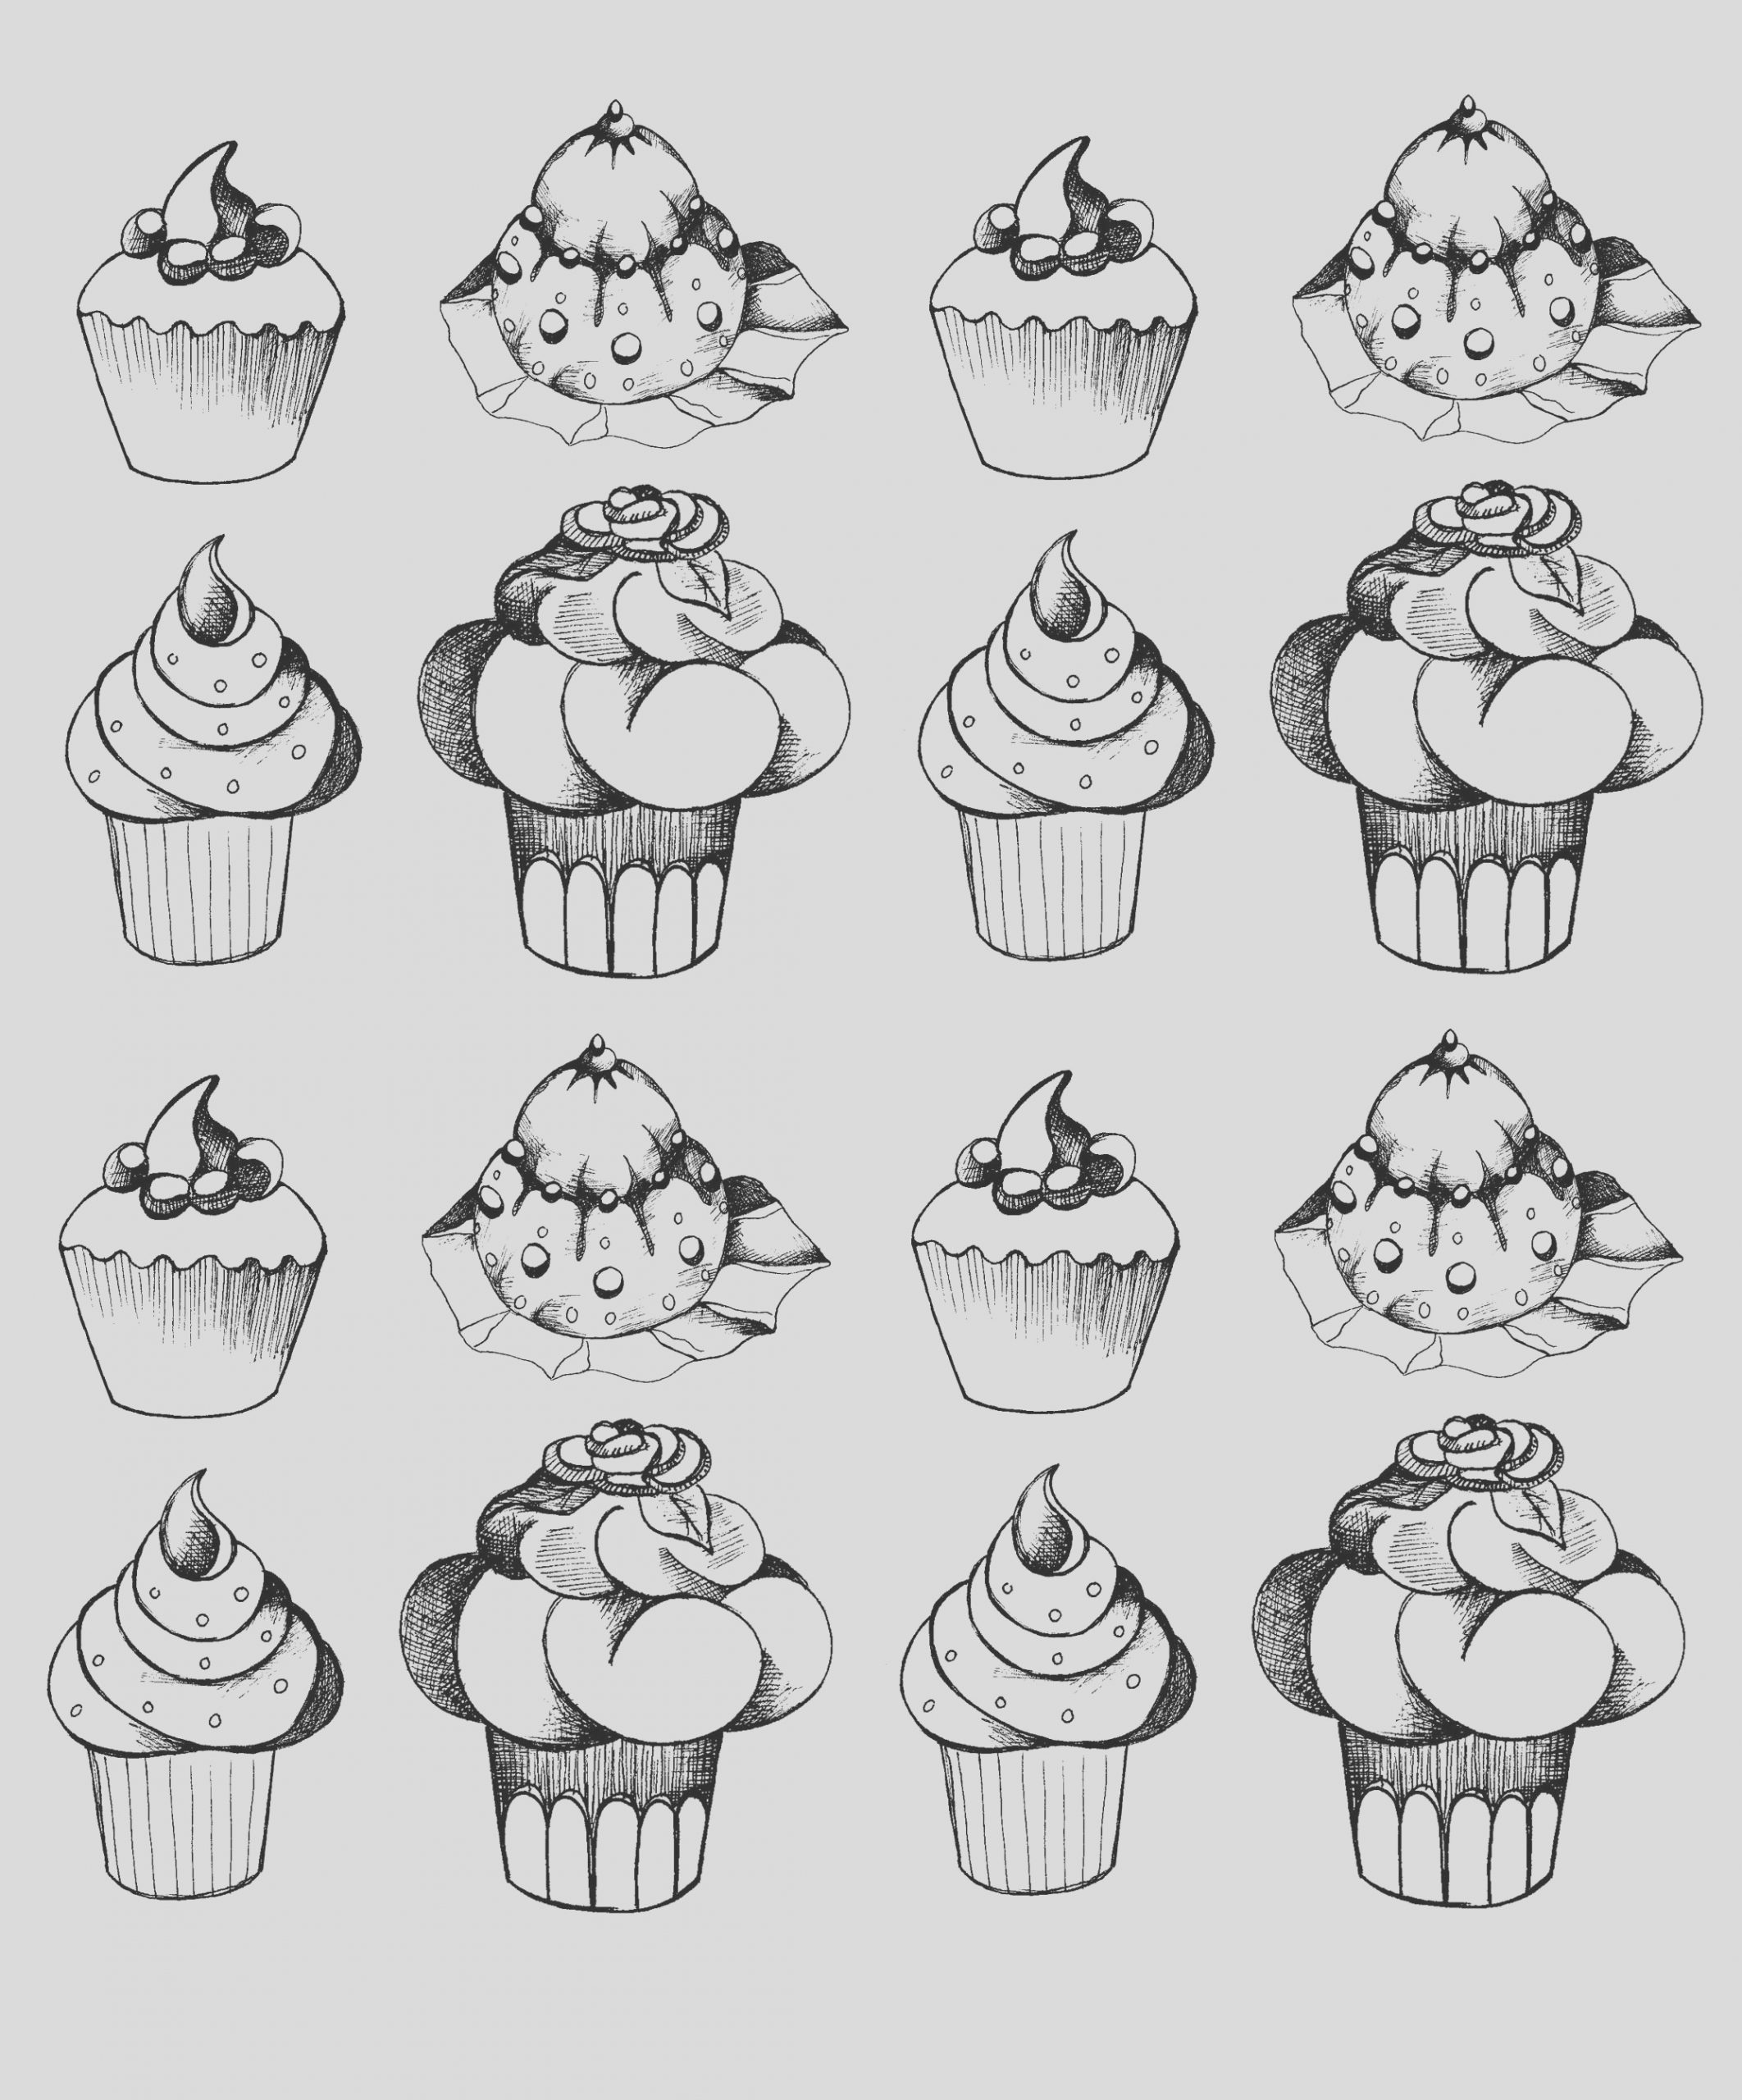 image=cup cakes coloring adult cupcakes oldstyle 1